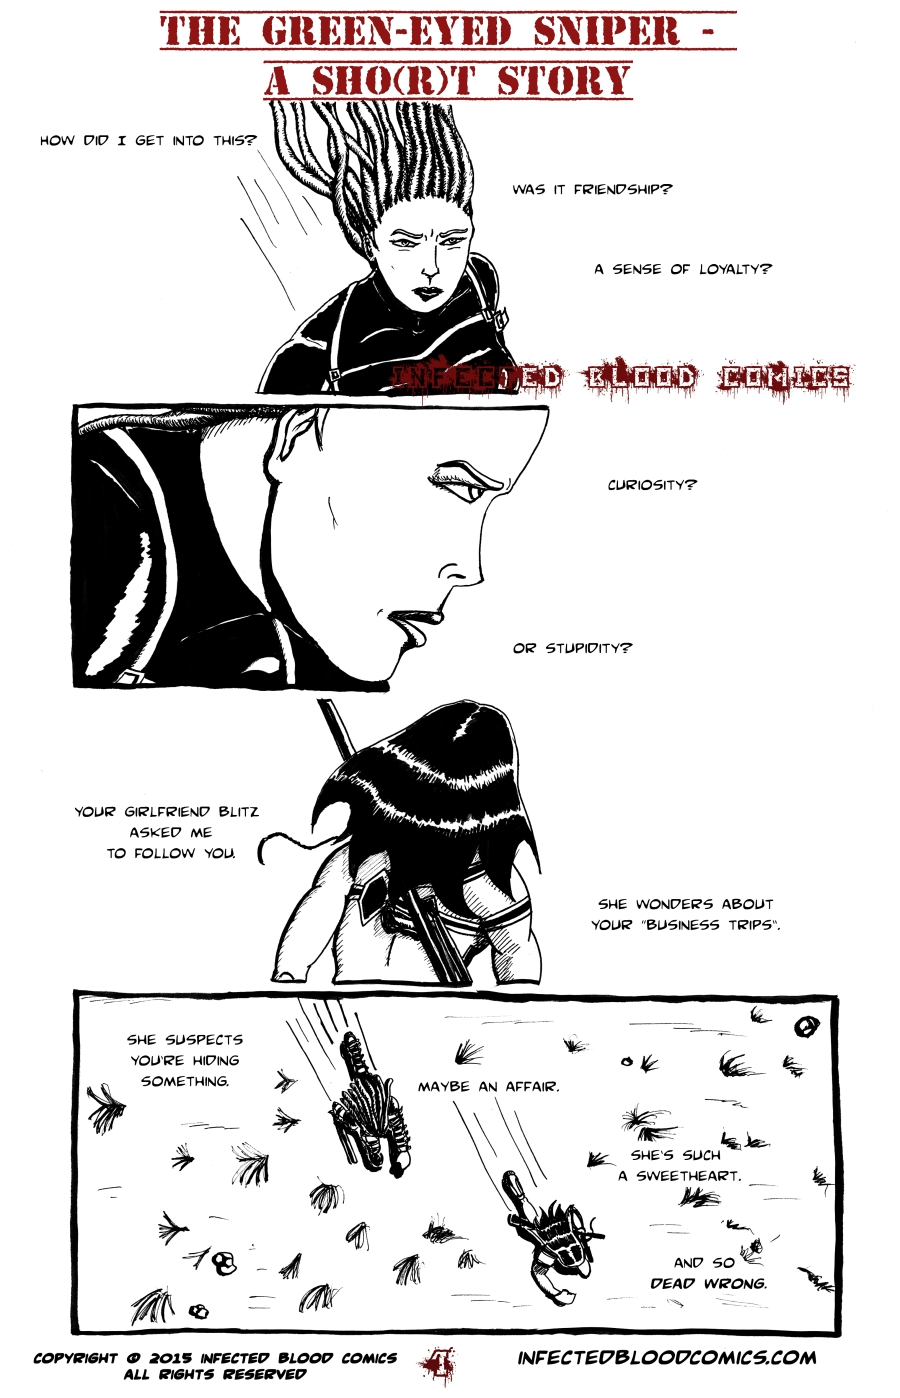 GES_Part1_Page1_redone